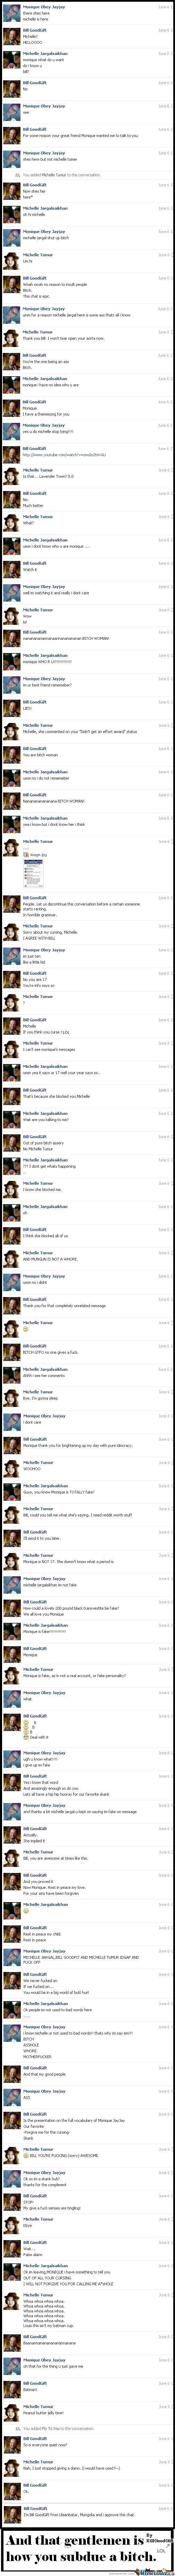 Facebook Chat Win Part 2.